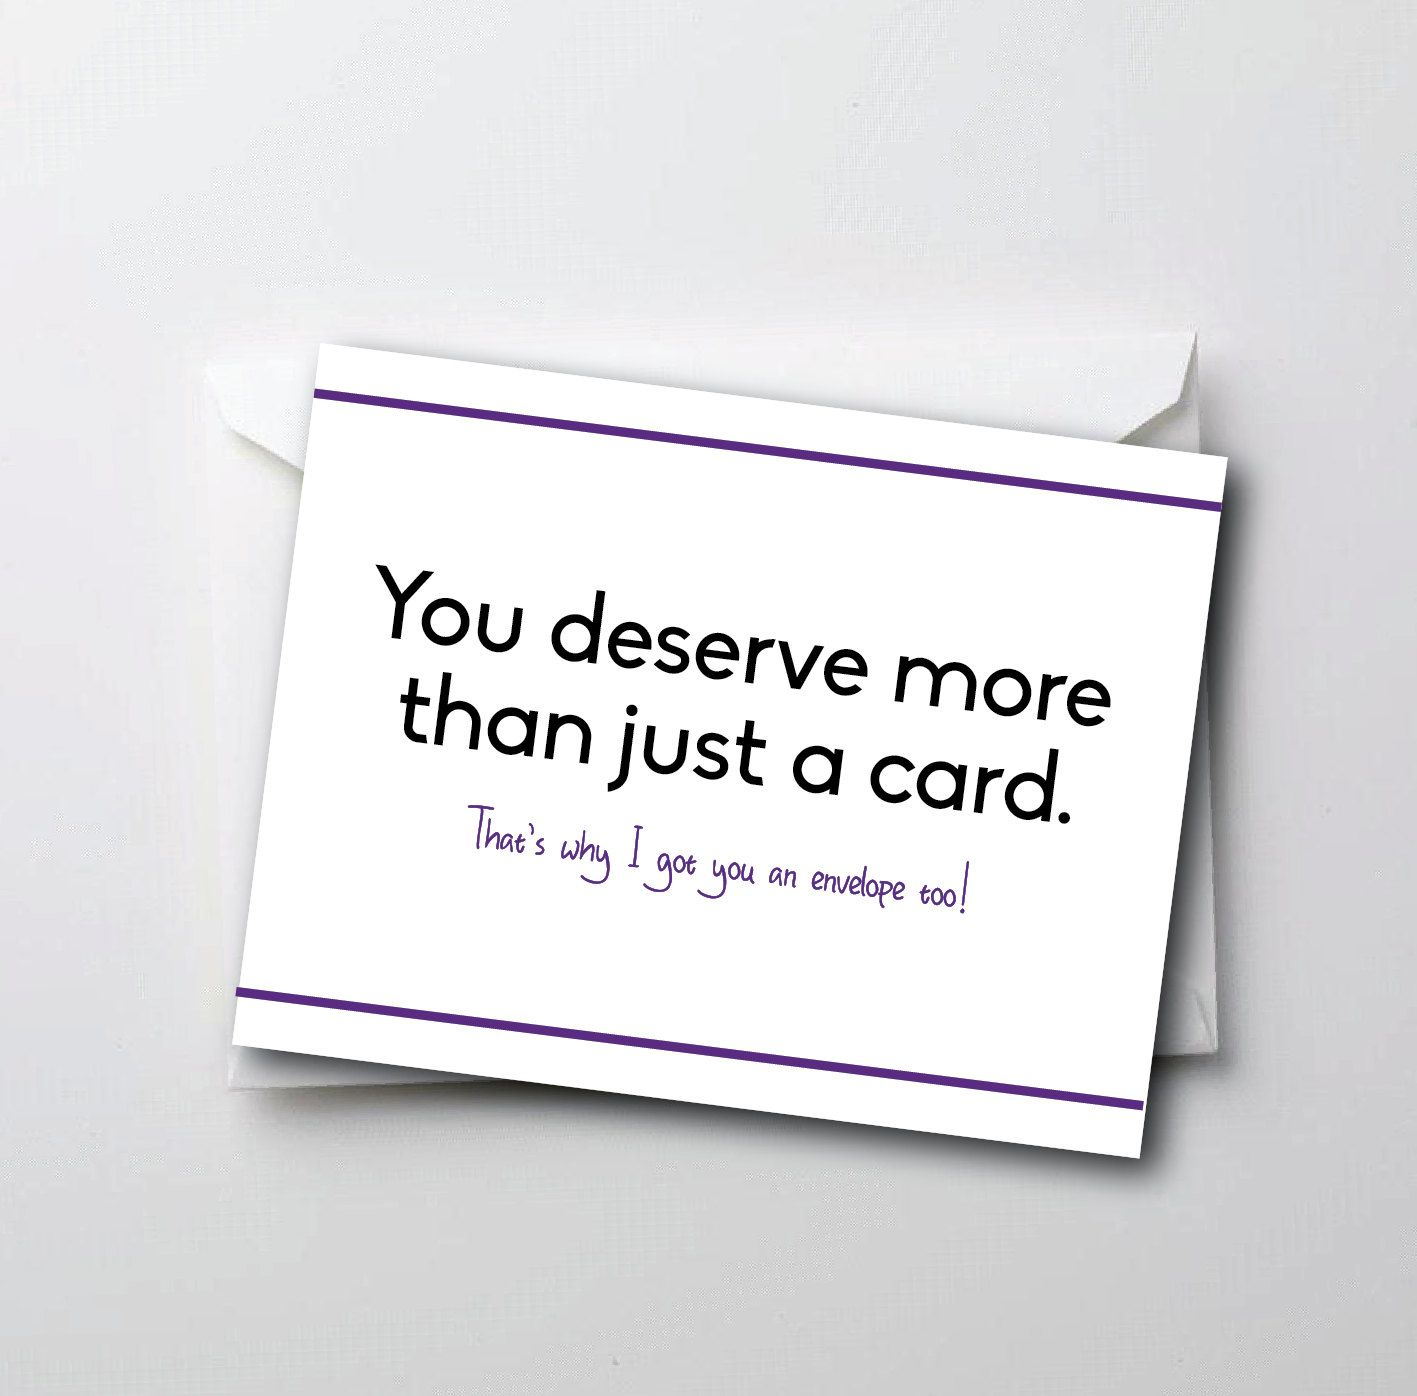 Funny Mean Birthday Card You Deserve More Than Just A Card That 39 S Why I Got You An Funny Birthday Cards Birthday Cards For Friends Birthday Card Sayings